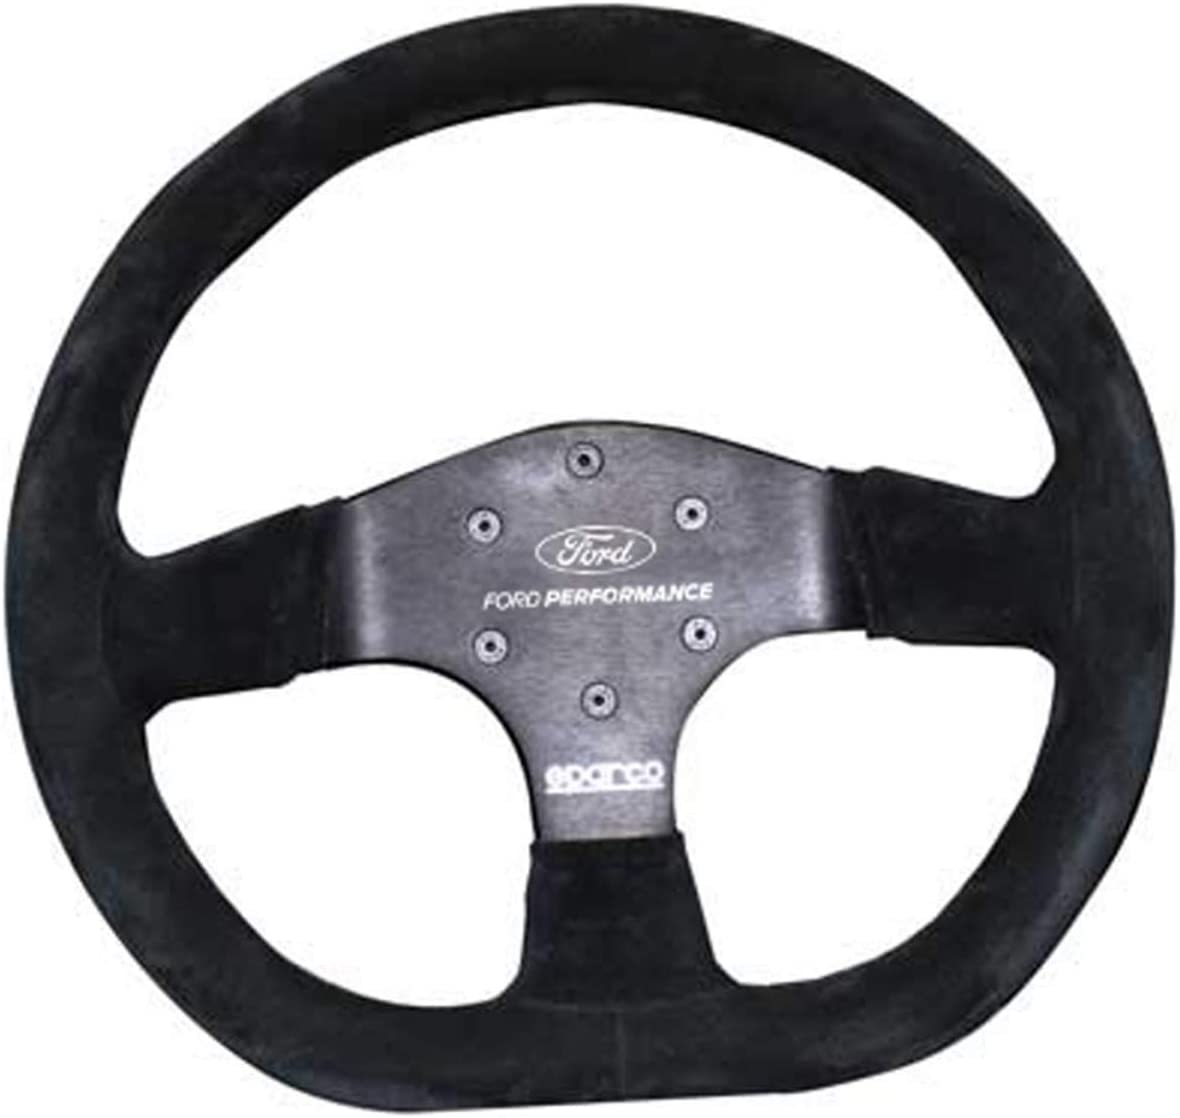 Ford Performance Parts M-3600-RA 35% OFF Racing Use favorite Steering Wheel; For